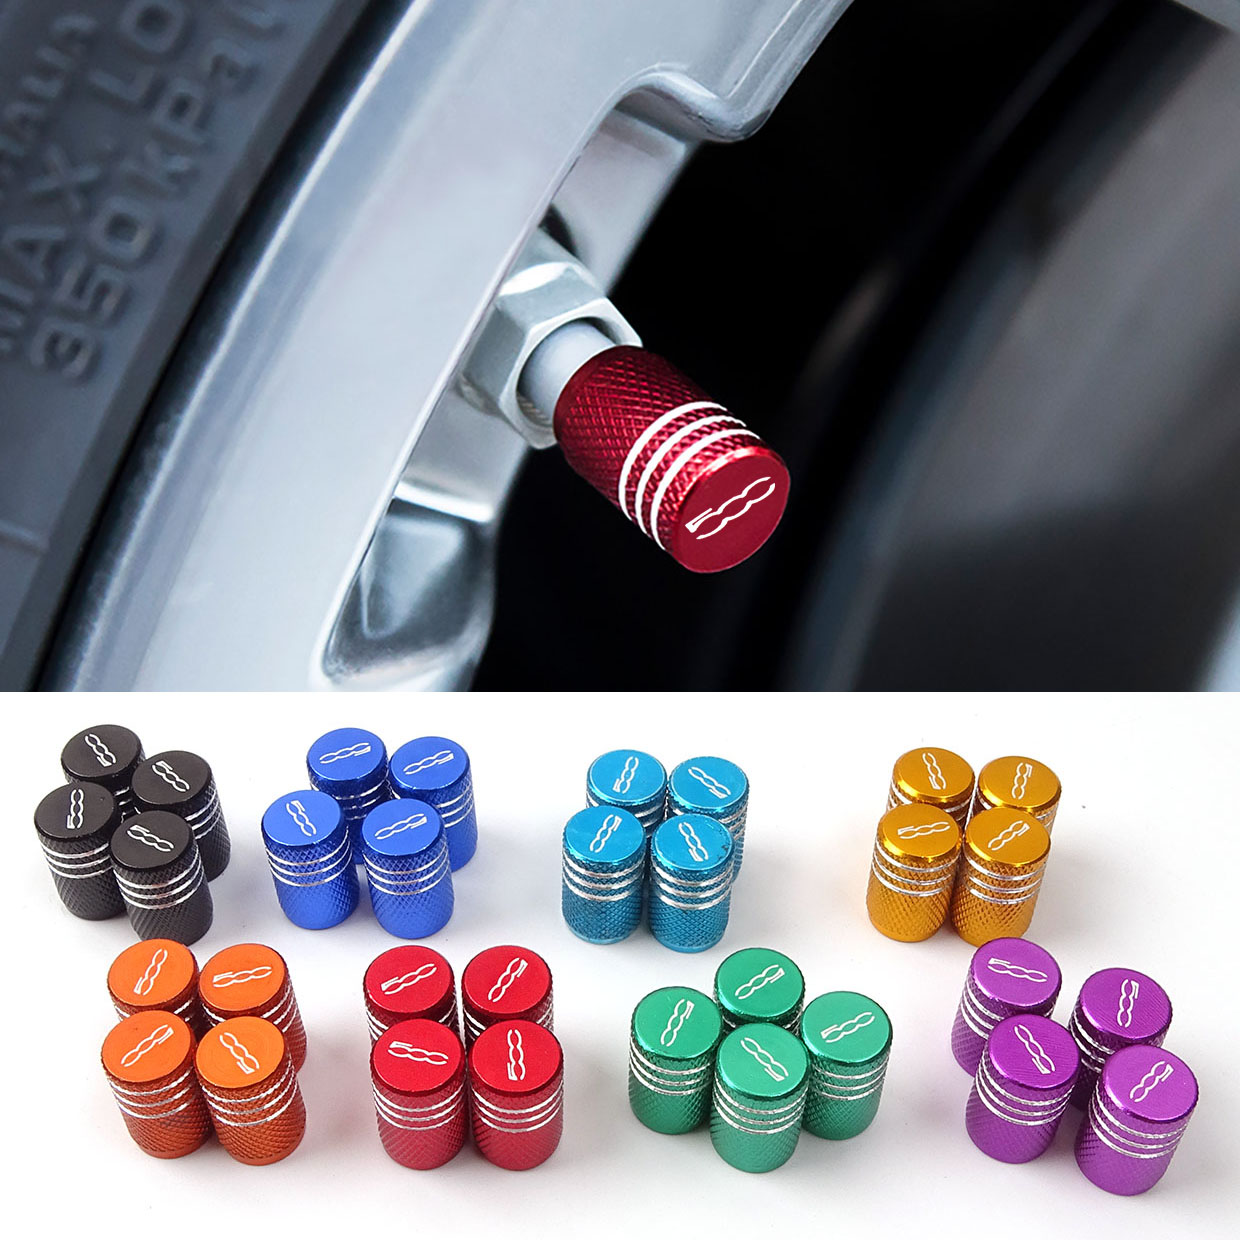 4pcs Metal Wheel Tire Valve Caps Stem Case For Fiat 500 Punto Abarth Stilo Ducato Palio Bravo Doblo Car Accessories